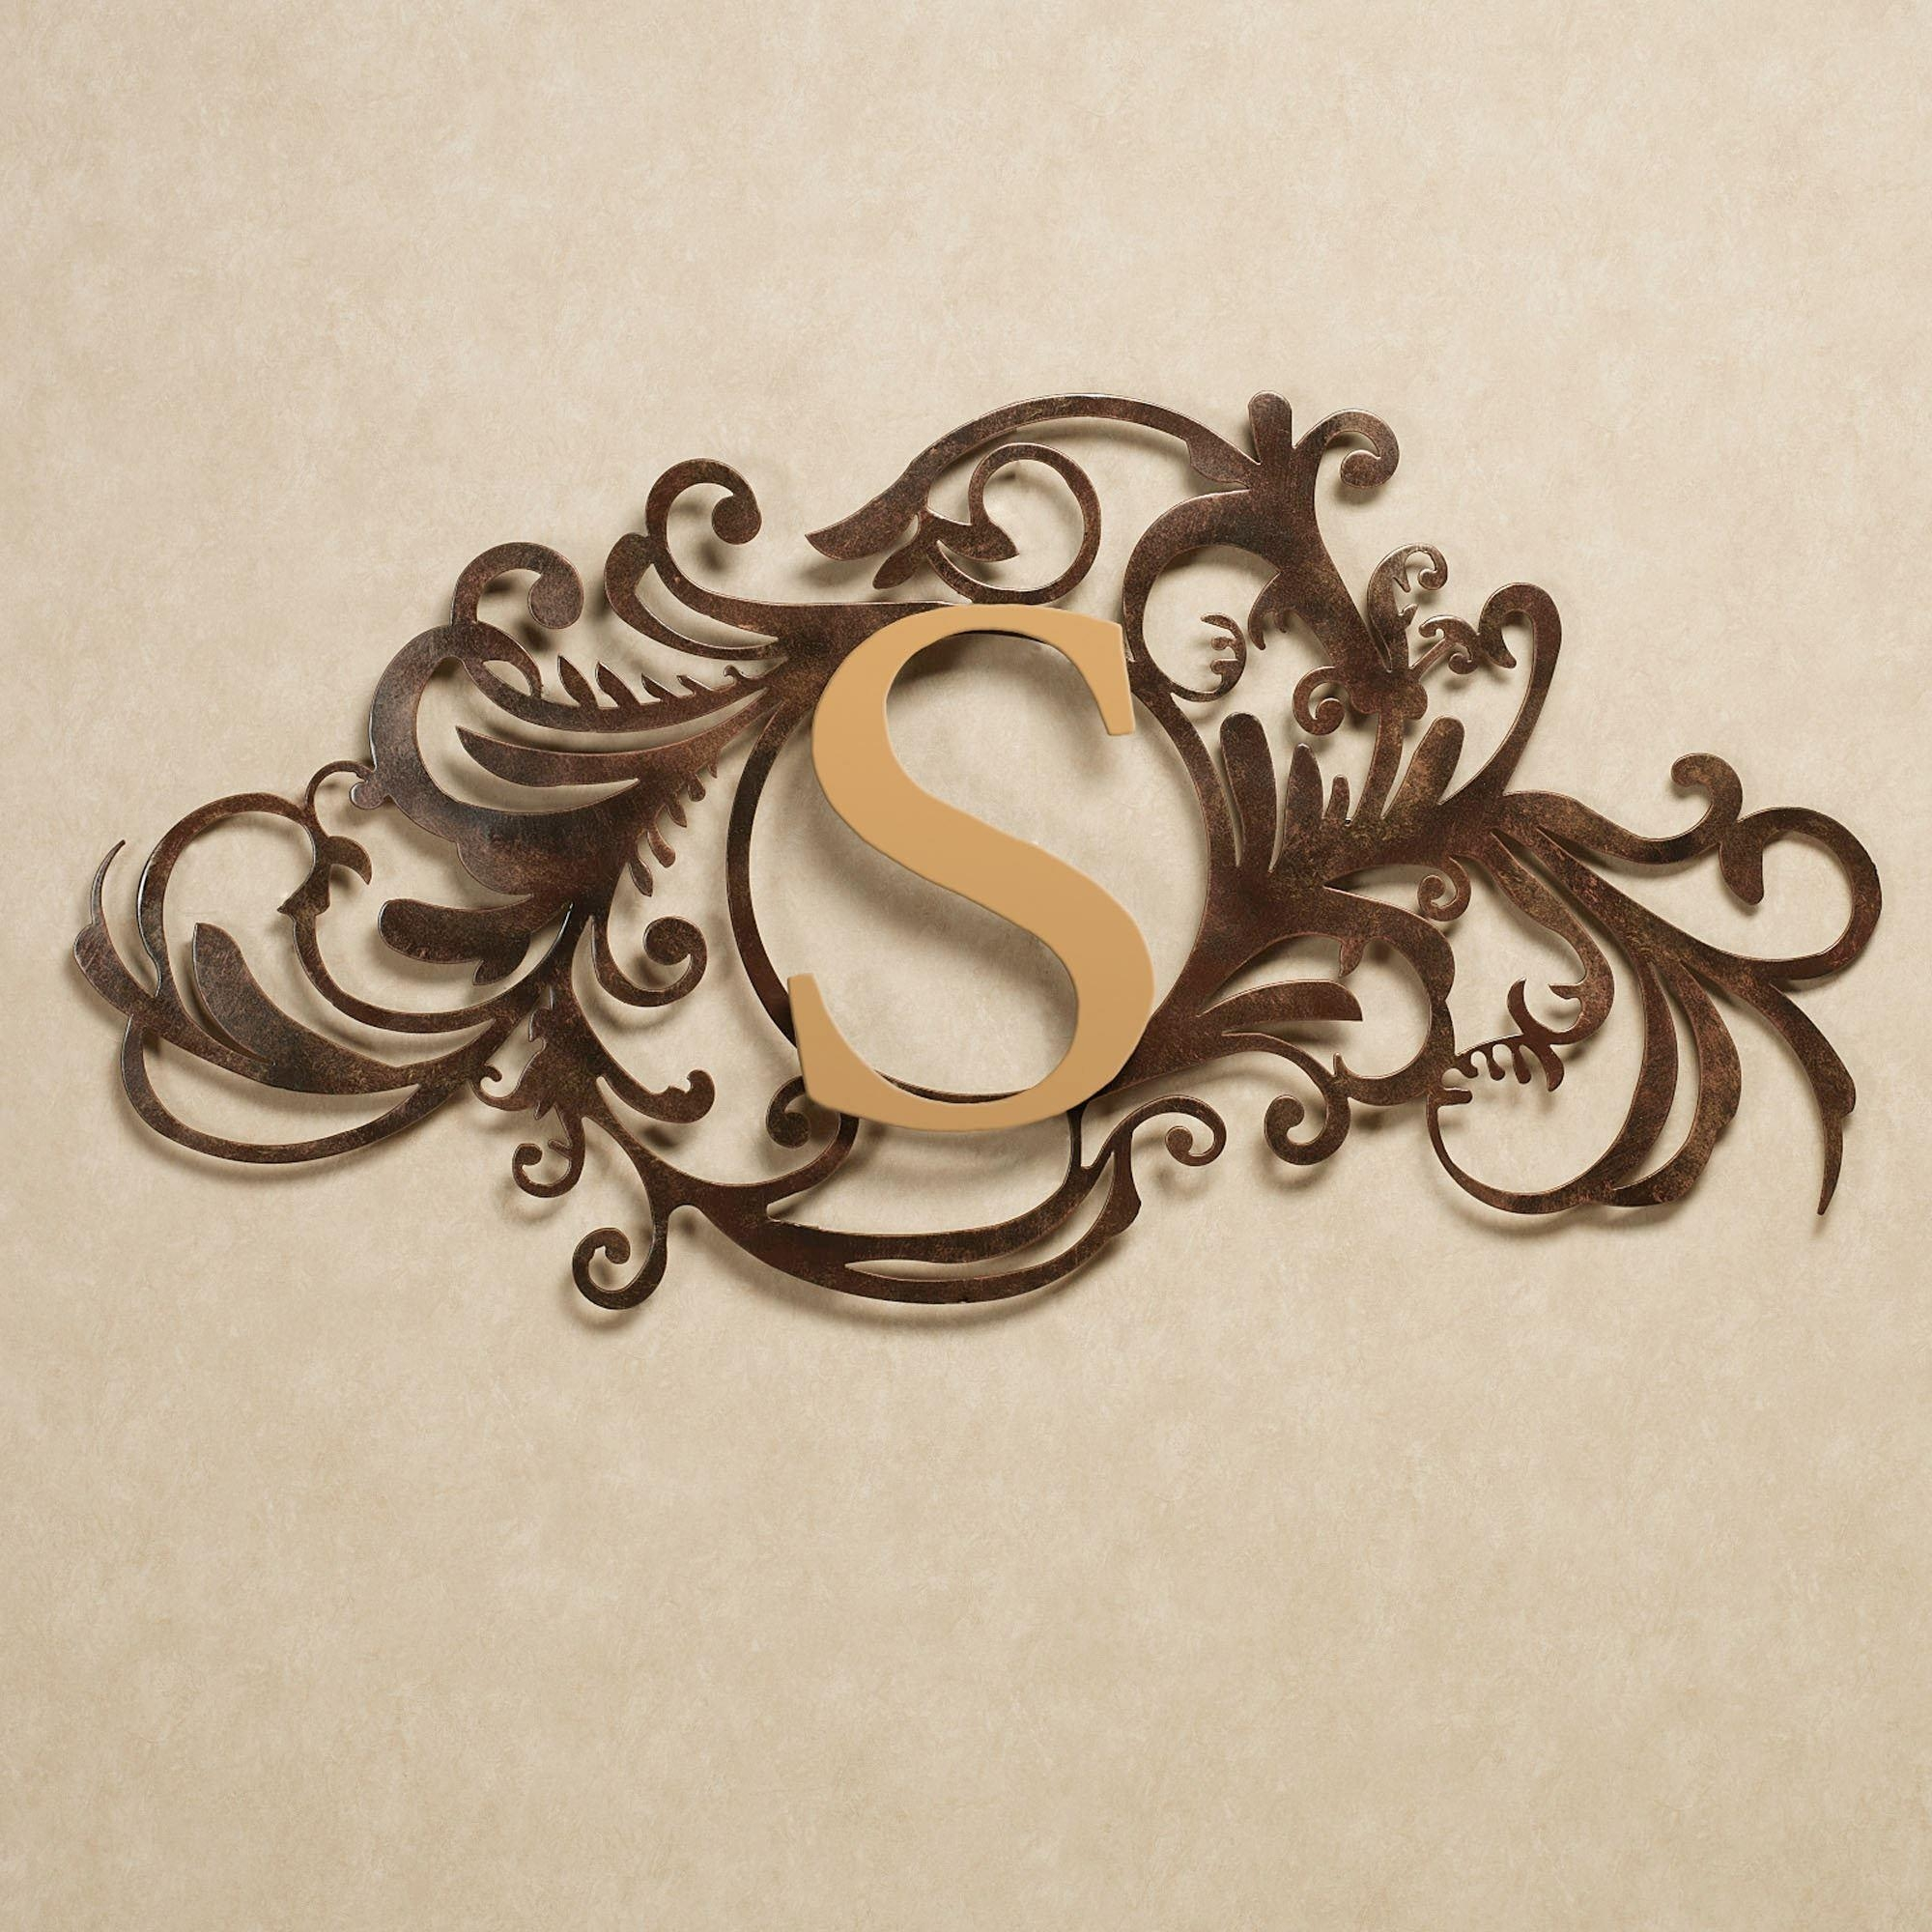 Evanston Indoor Outdoor Monogram Metal Wall Art Sign Regarding Exclusive Wall Art (Image 7 of 20)